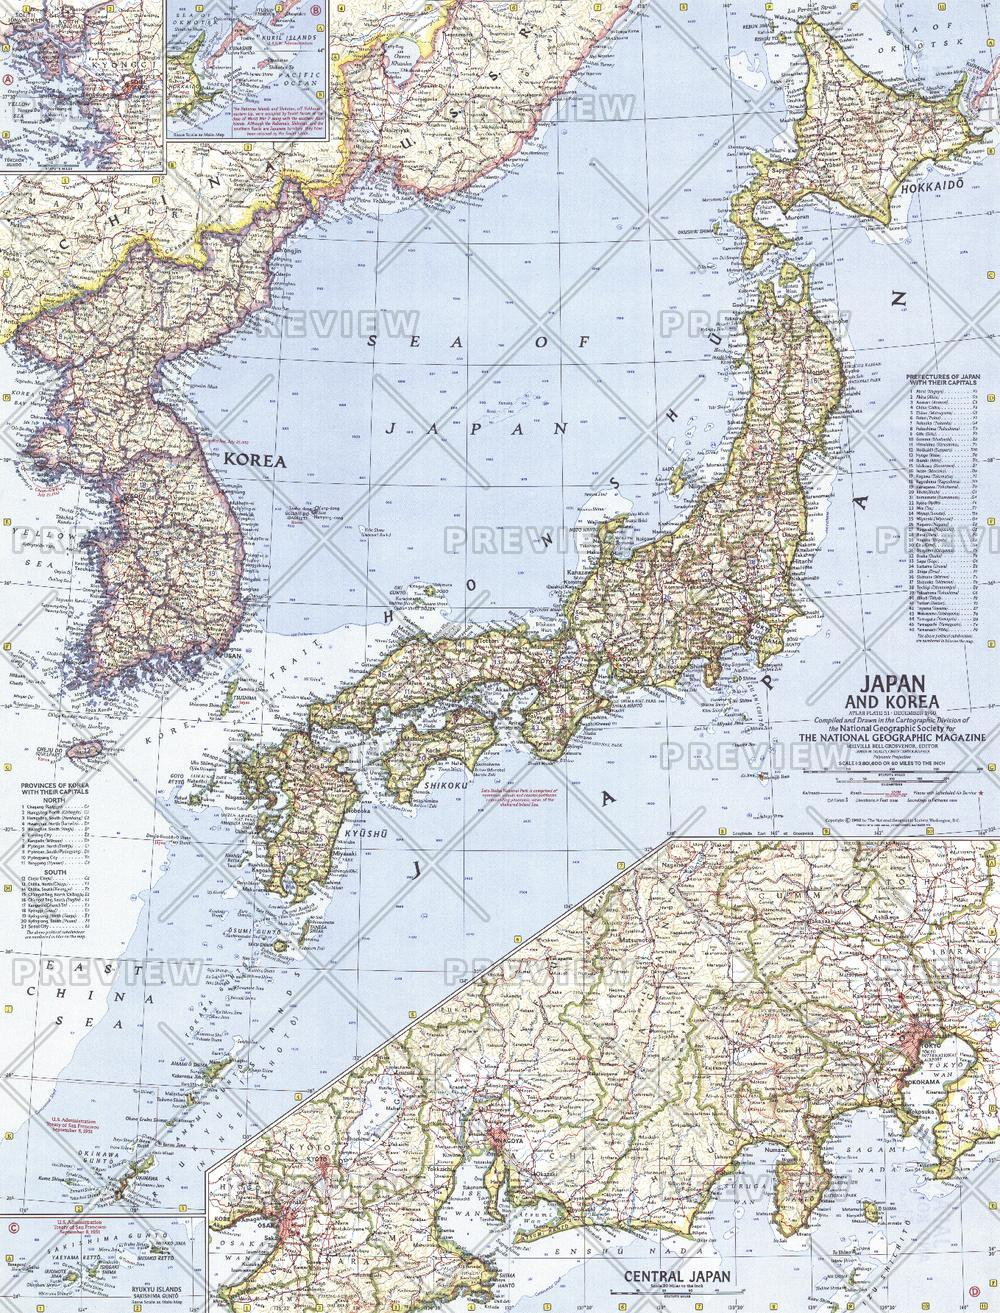 Japan and Korea  -  Published 1960